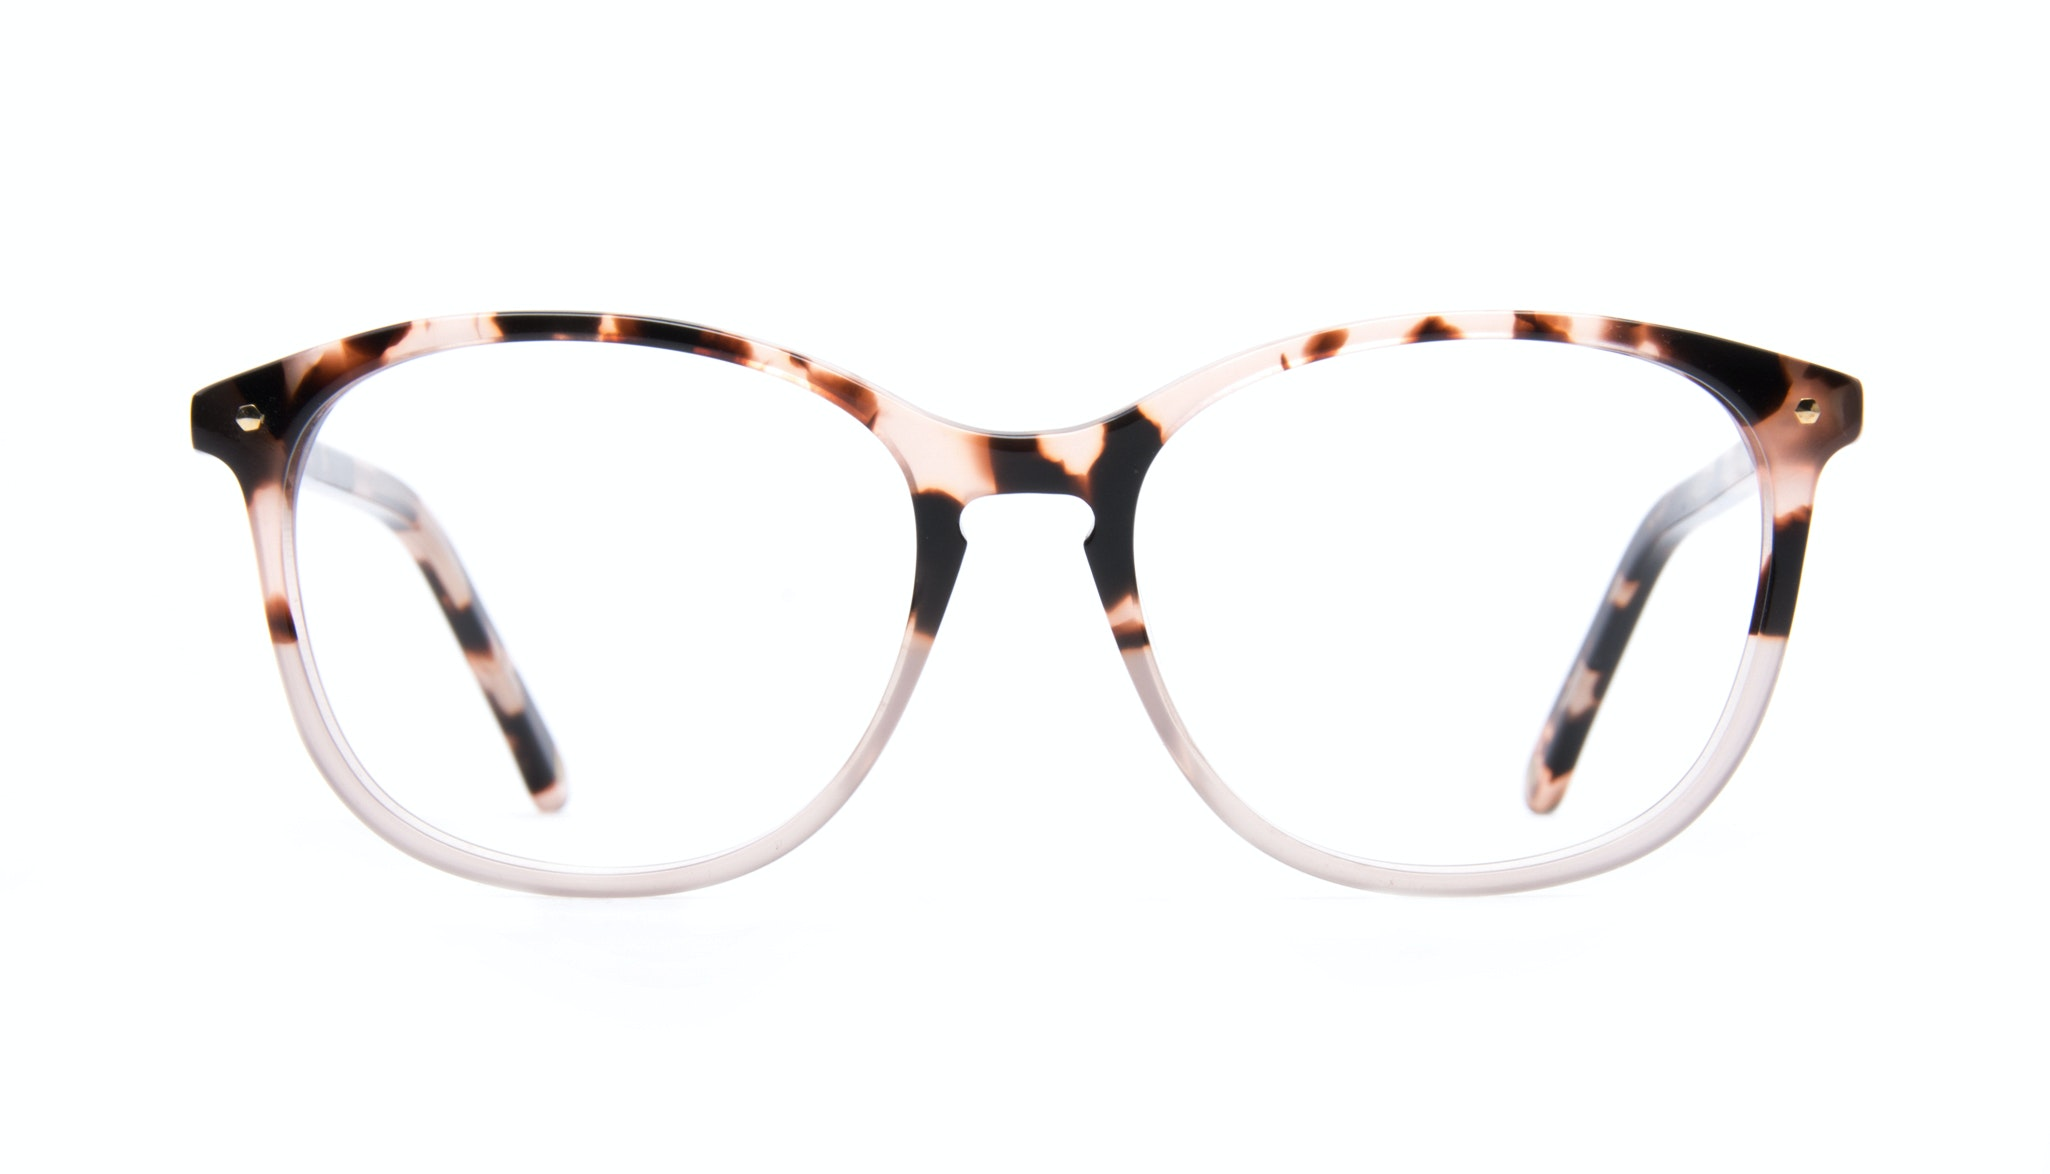 Affordable Fashion Glasses Rectangle Square Round Eyeglasses Women Nadine Two Tone Pink Front